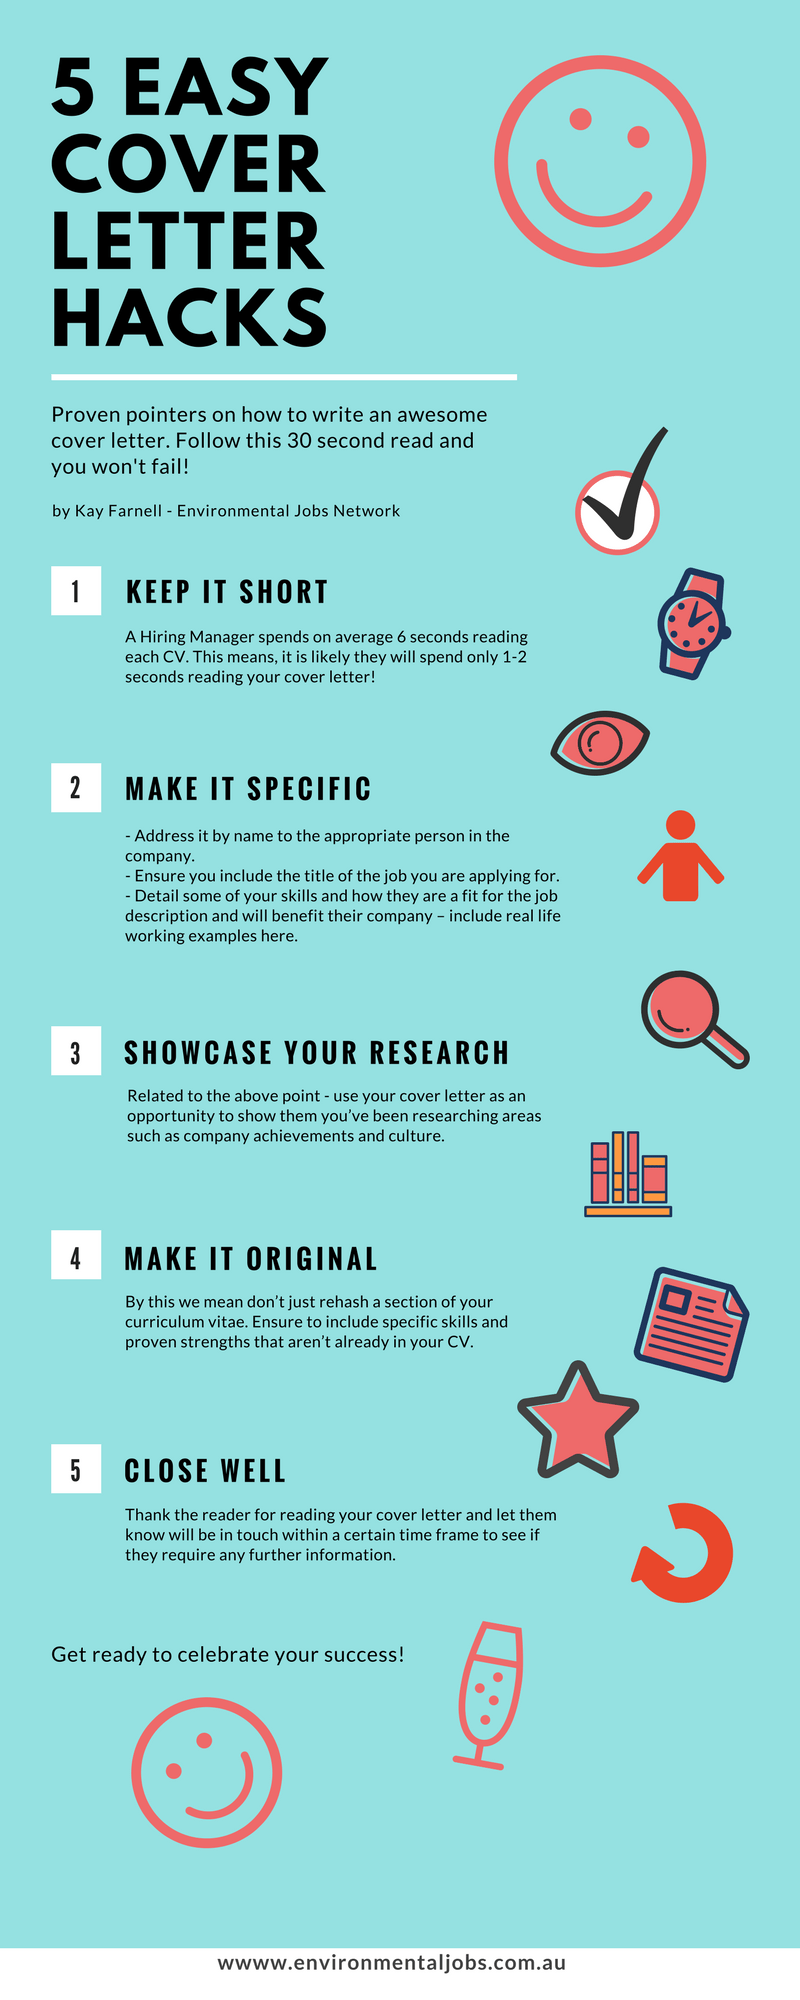 How To Write A Cover Letter The Easy Way  Free Infographic